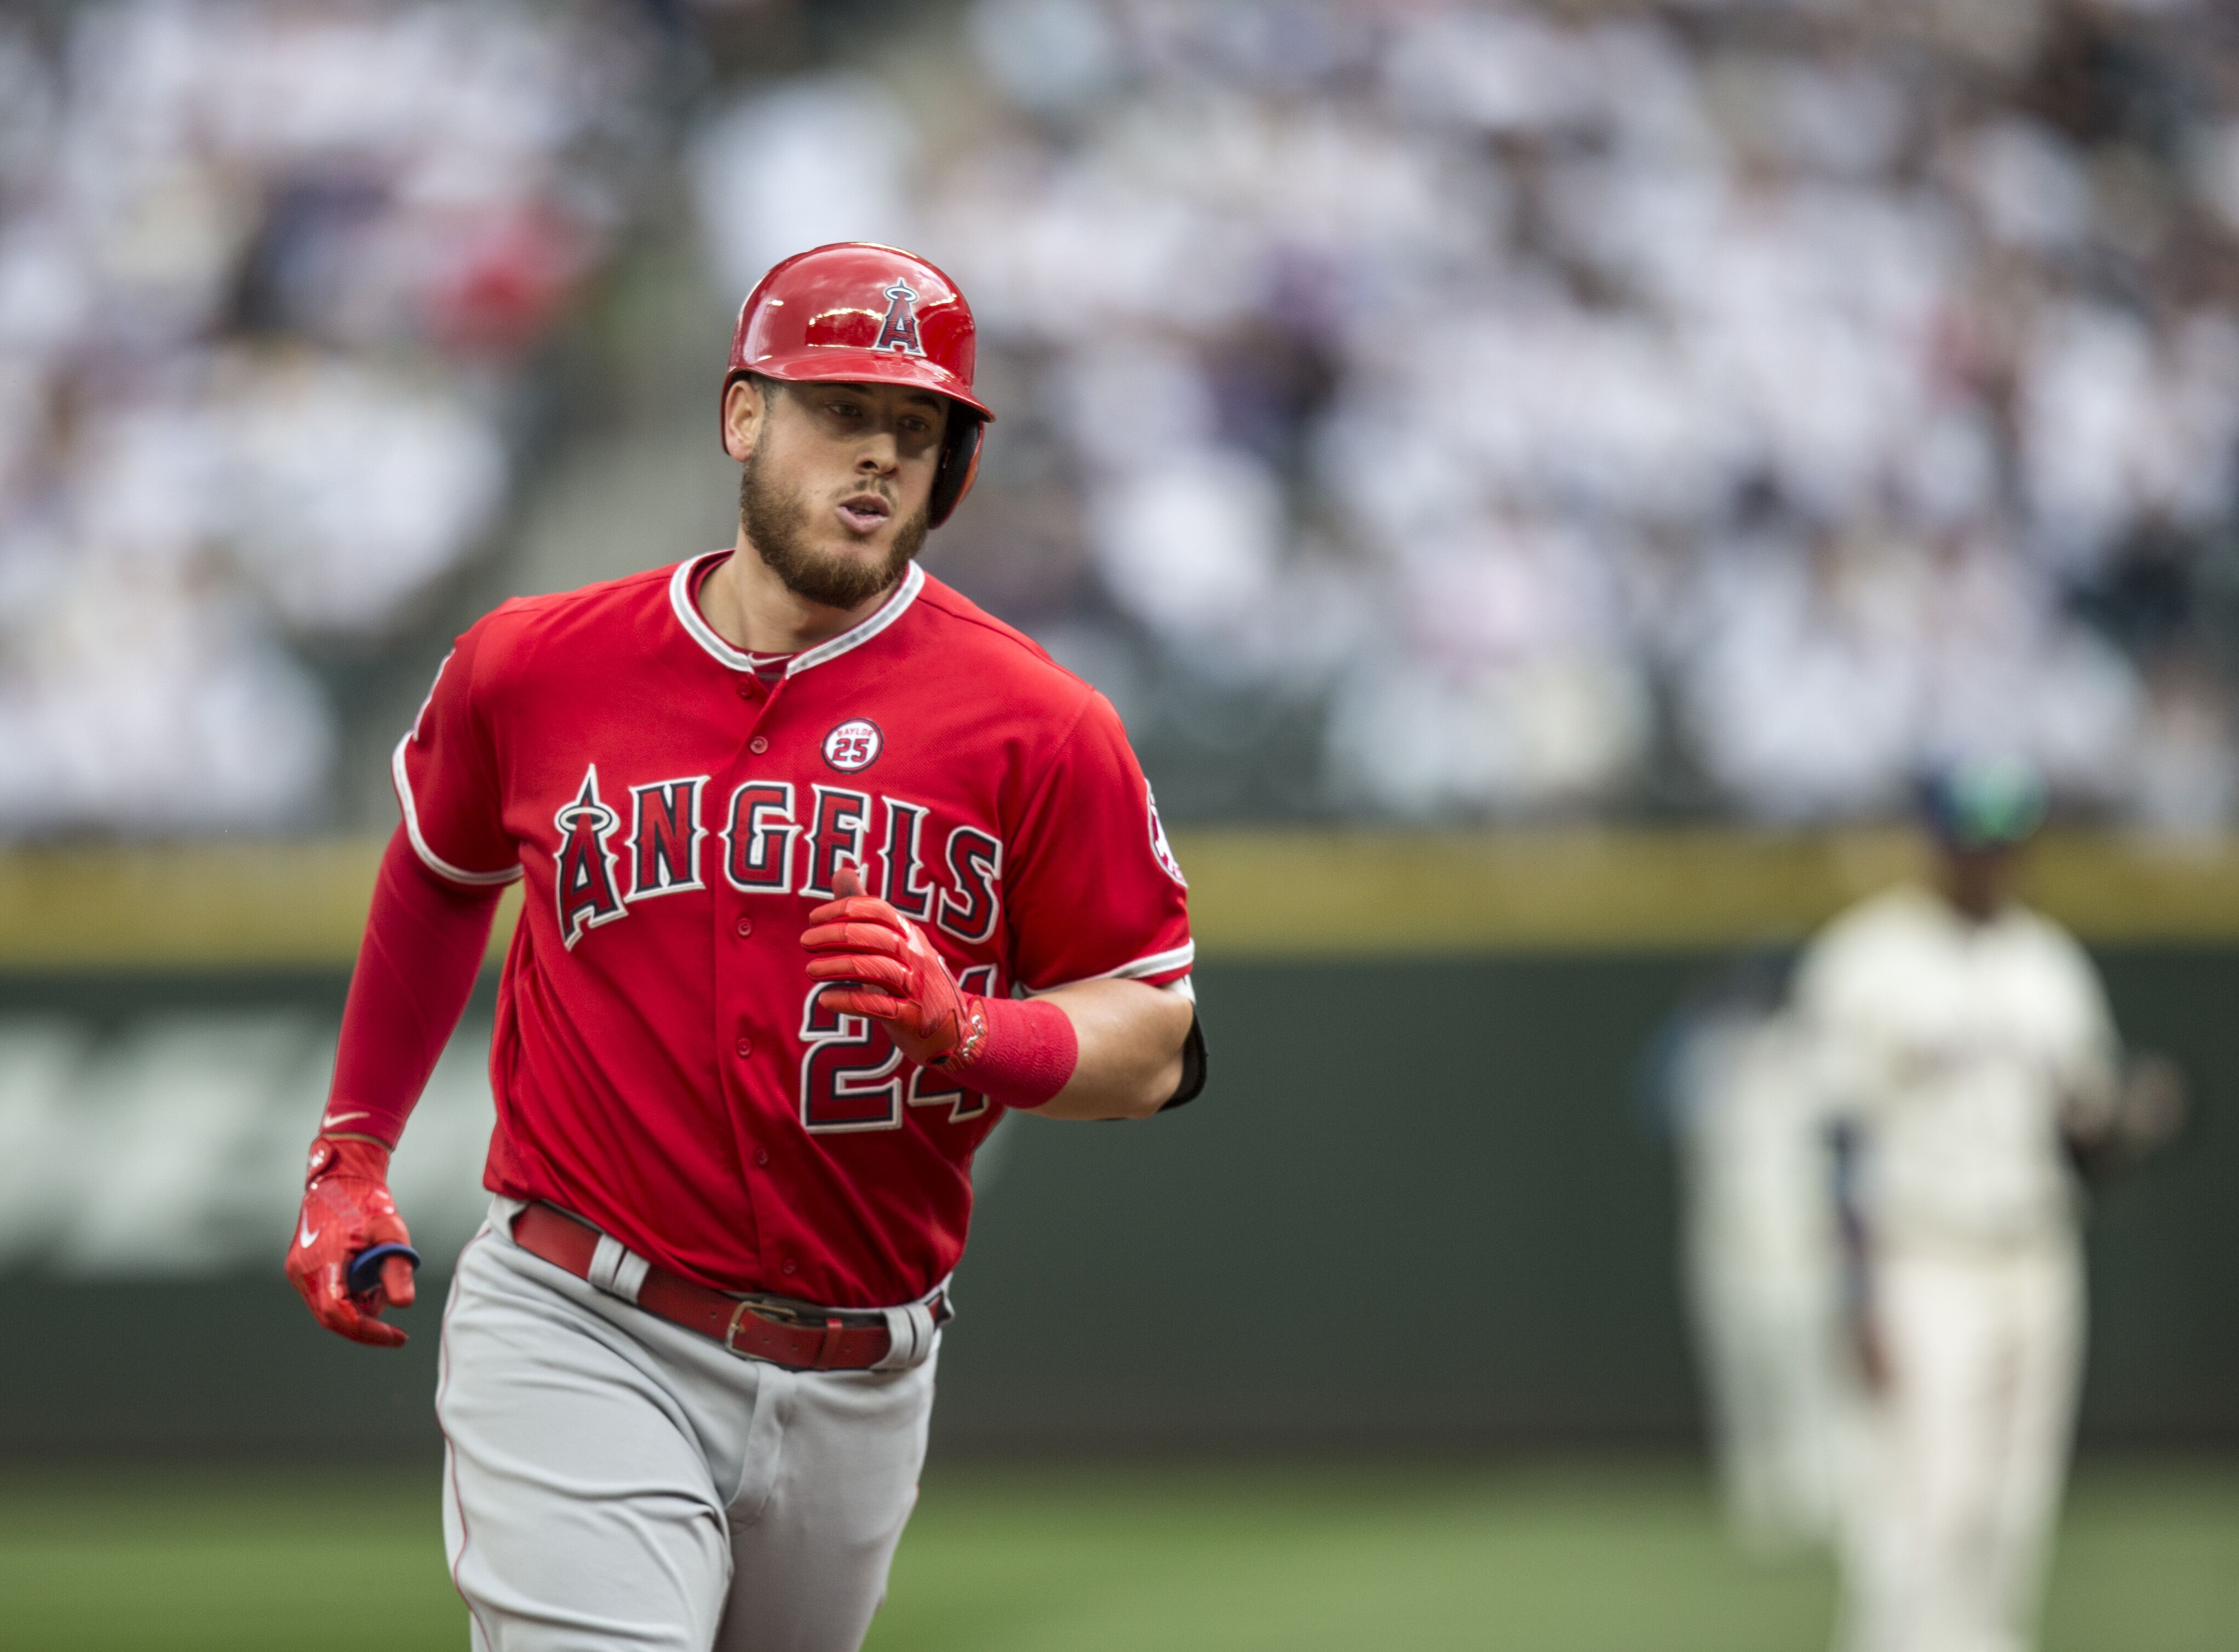 831122462-los-angeles-angels-of-anaheim-v-seattle-mariners.jpg